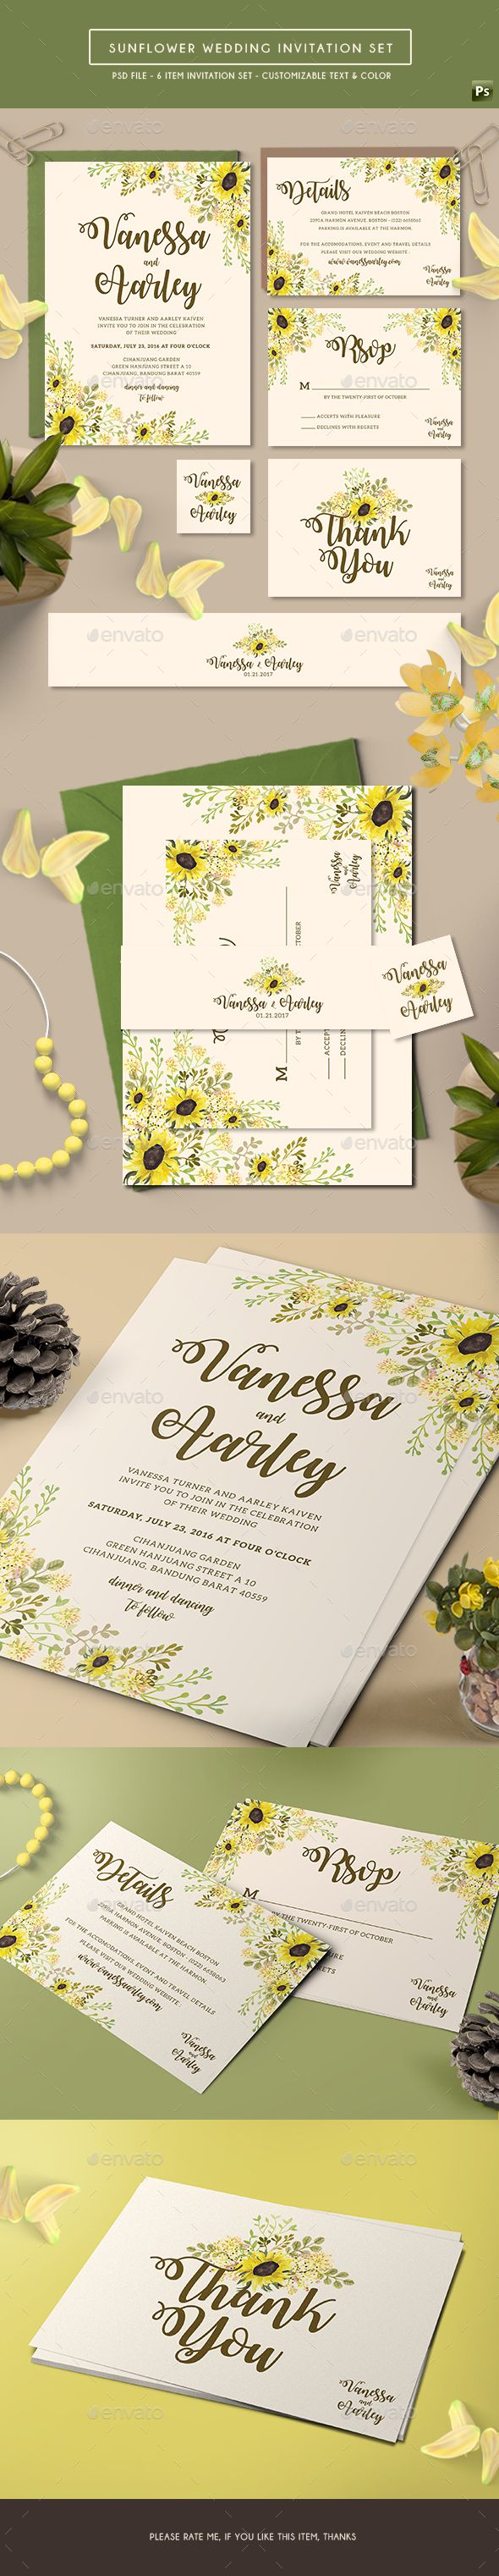 49 Best Convite Images On Pinterest Invitations Wedding